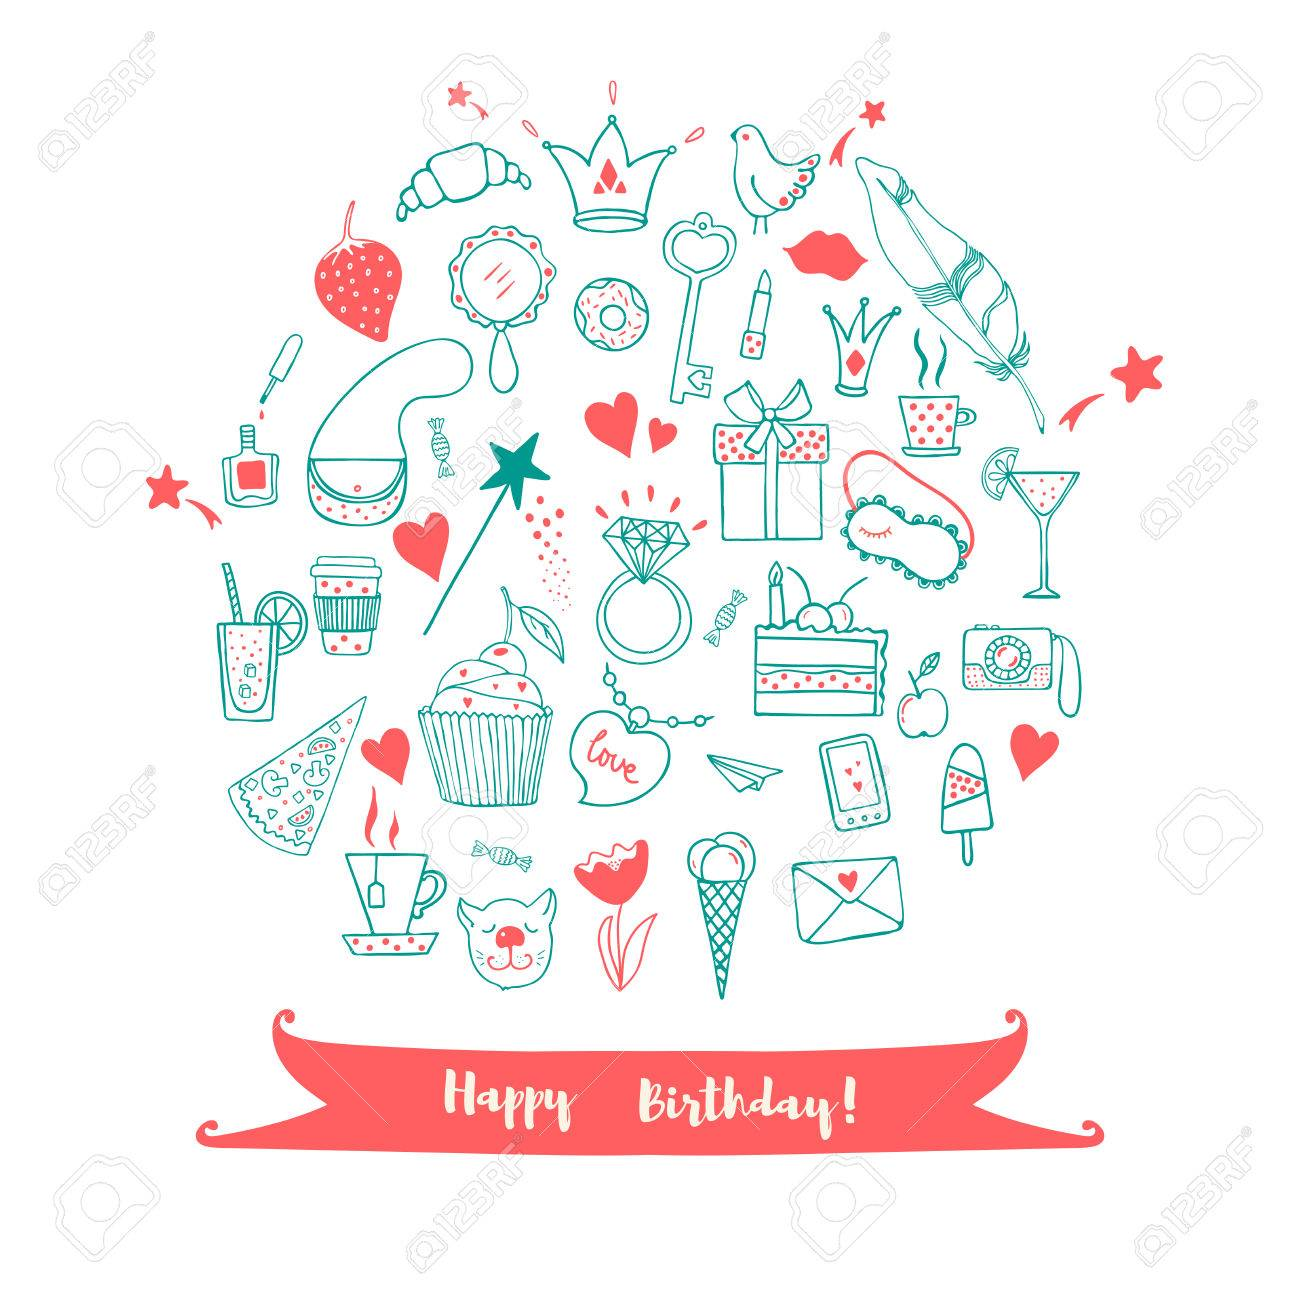 drawing of birthday greeting cards ; 52190235-happy-birthday-greeting-card-hand-drawn-doodle-vector-set-with-presents-for-girl-modern-princess-ico